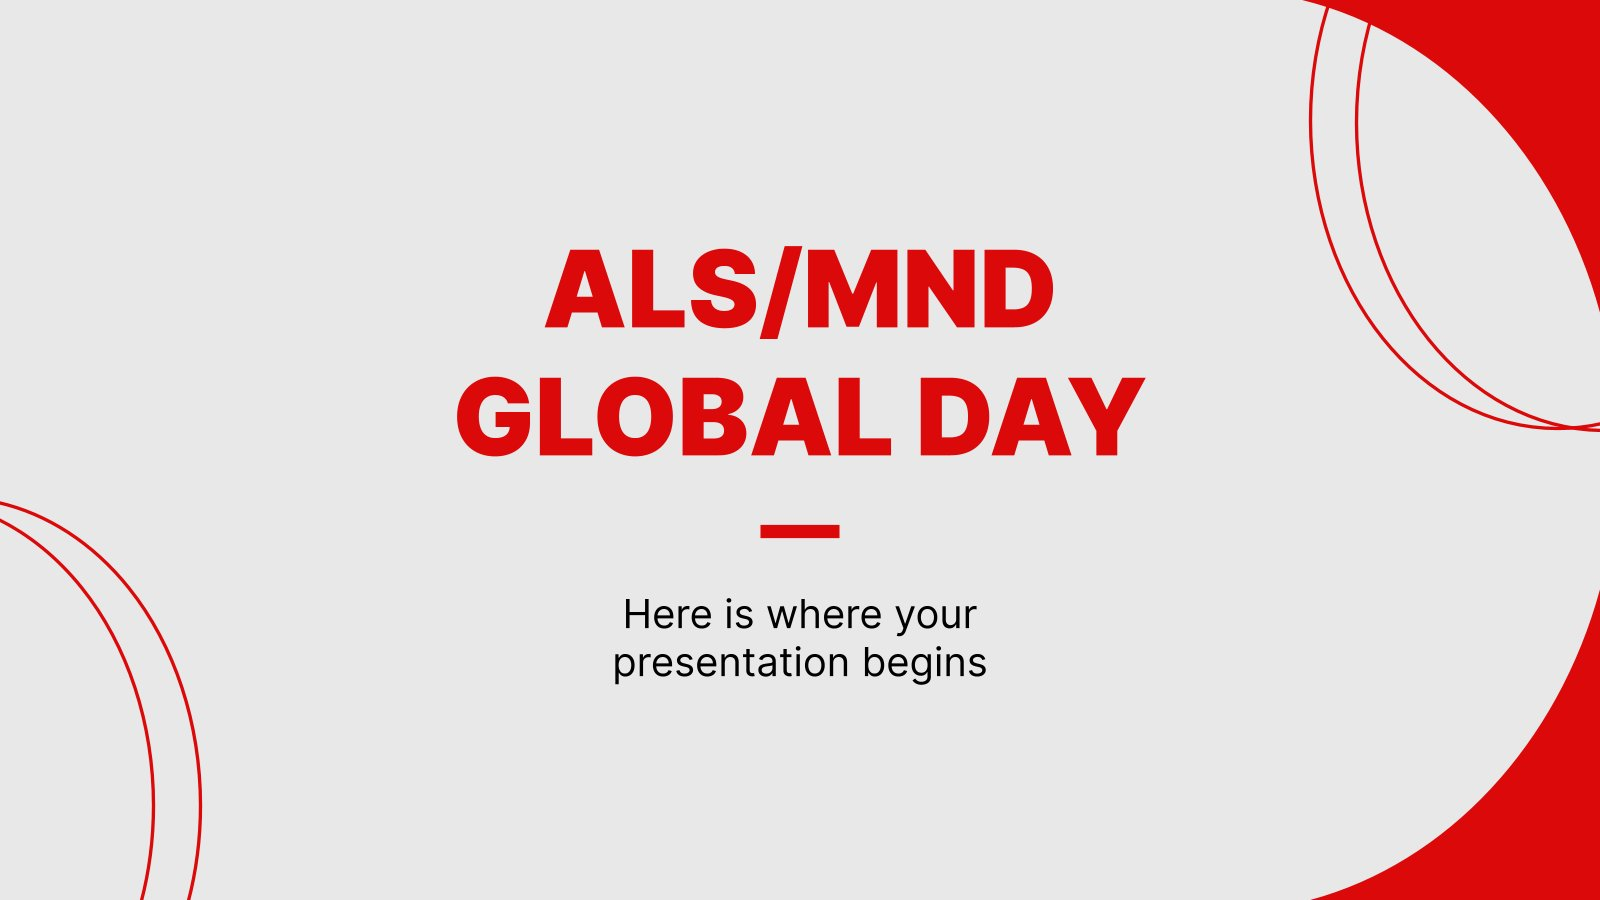 ALS/MND Global Day presentation template